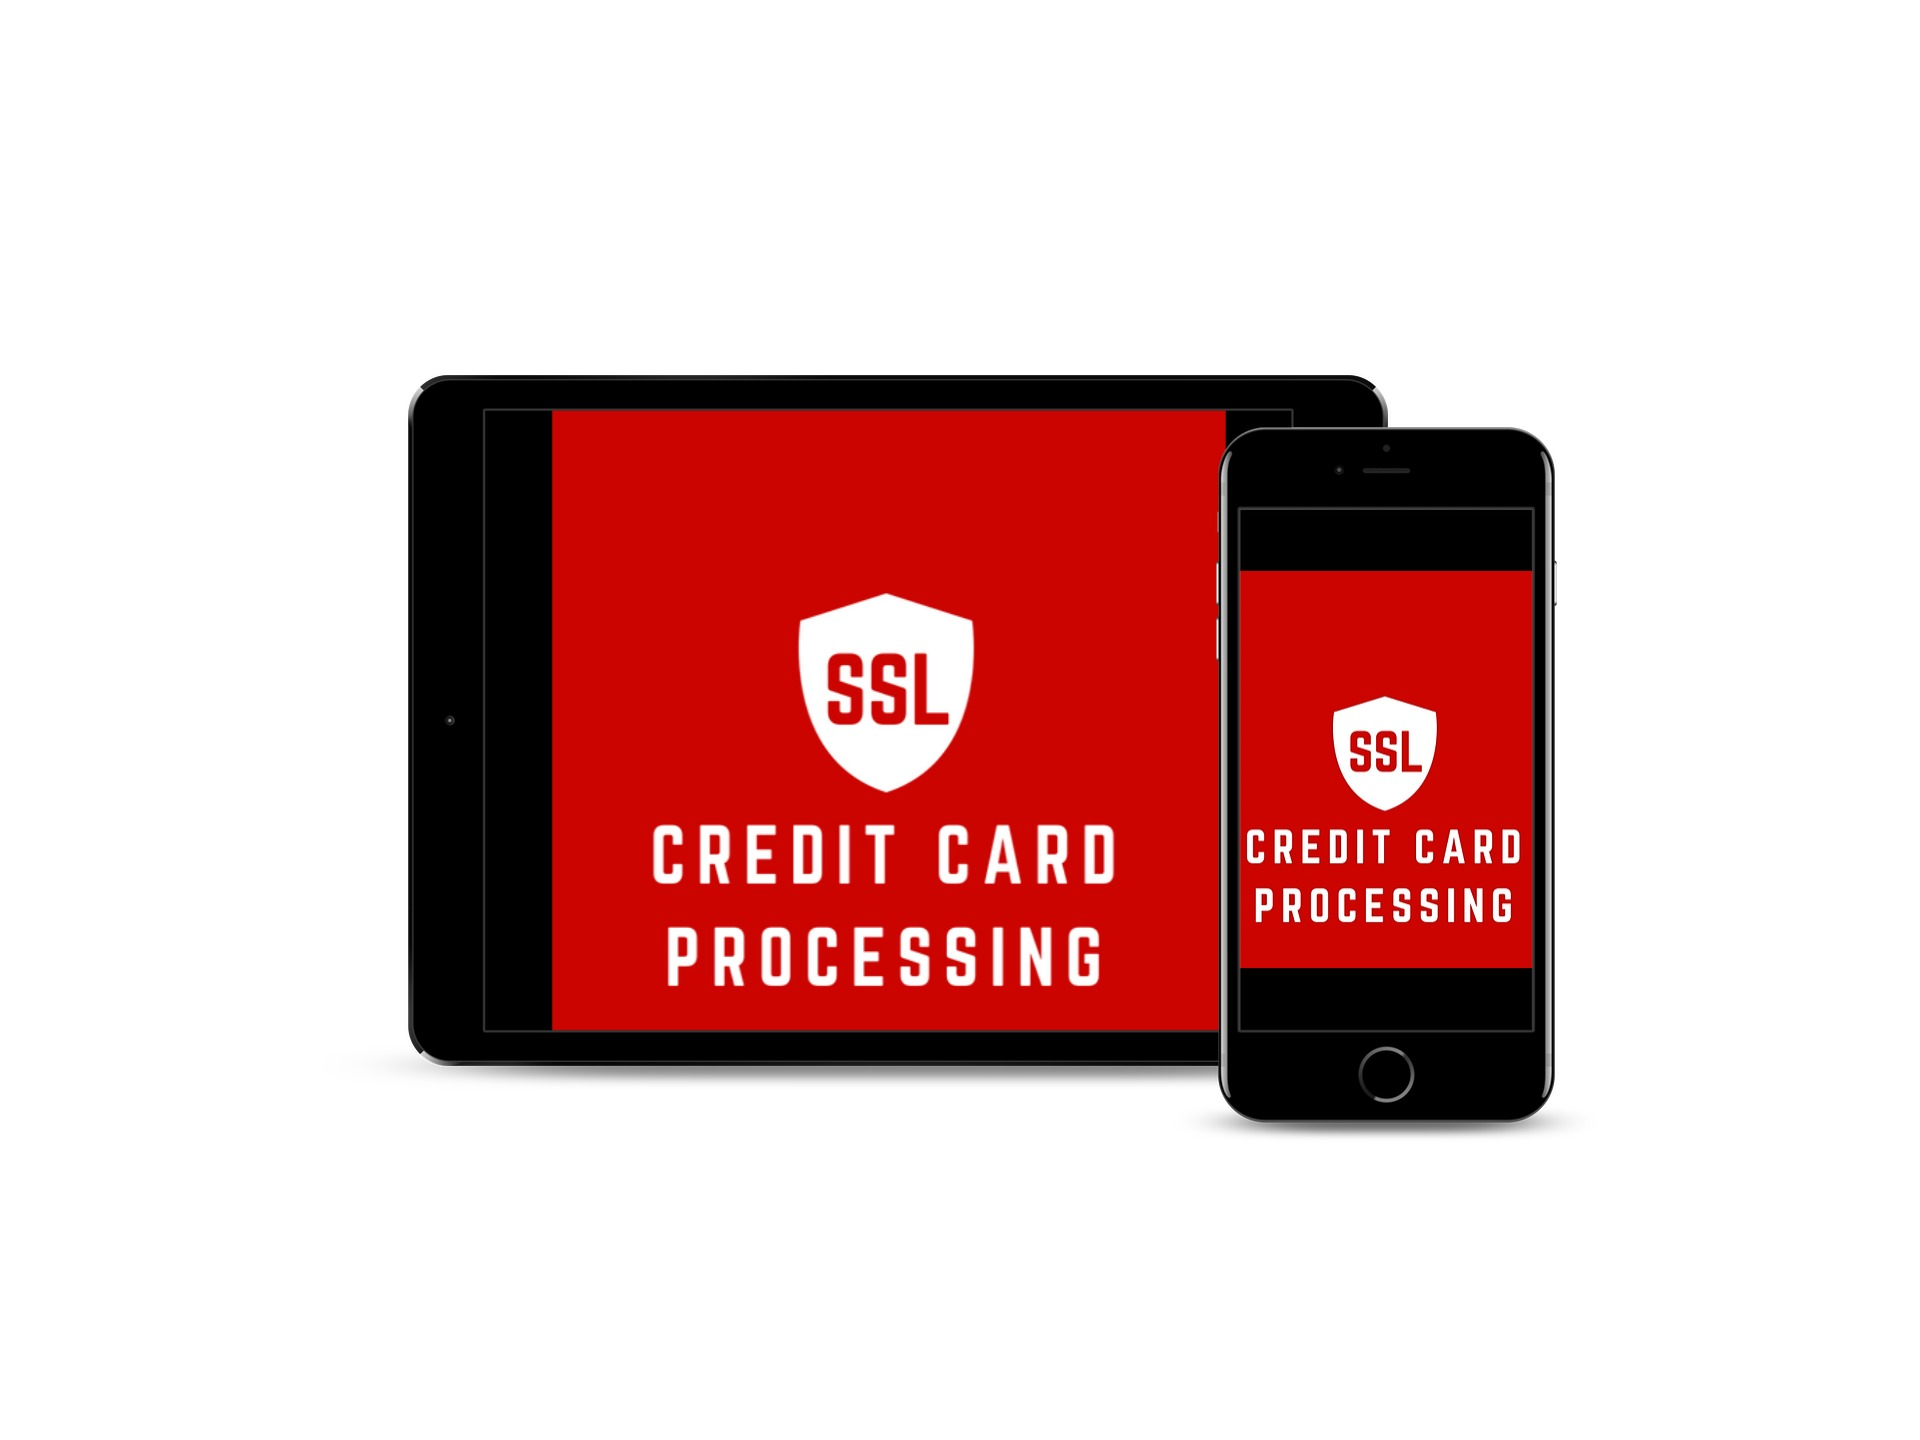 SSL Credit Card Processing With Quadrapay